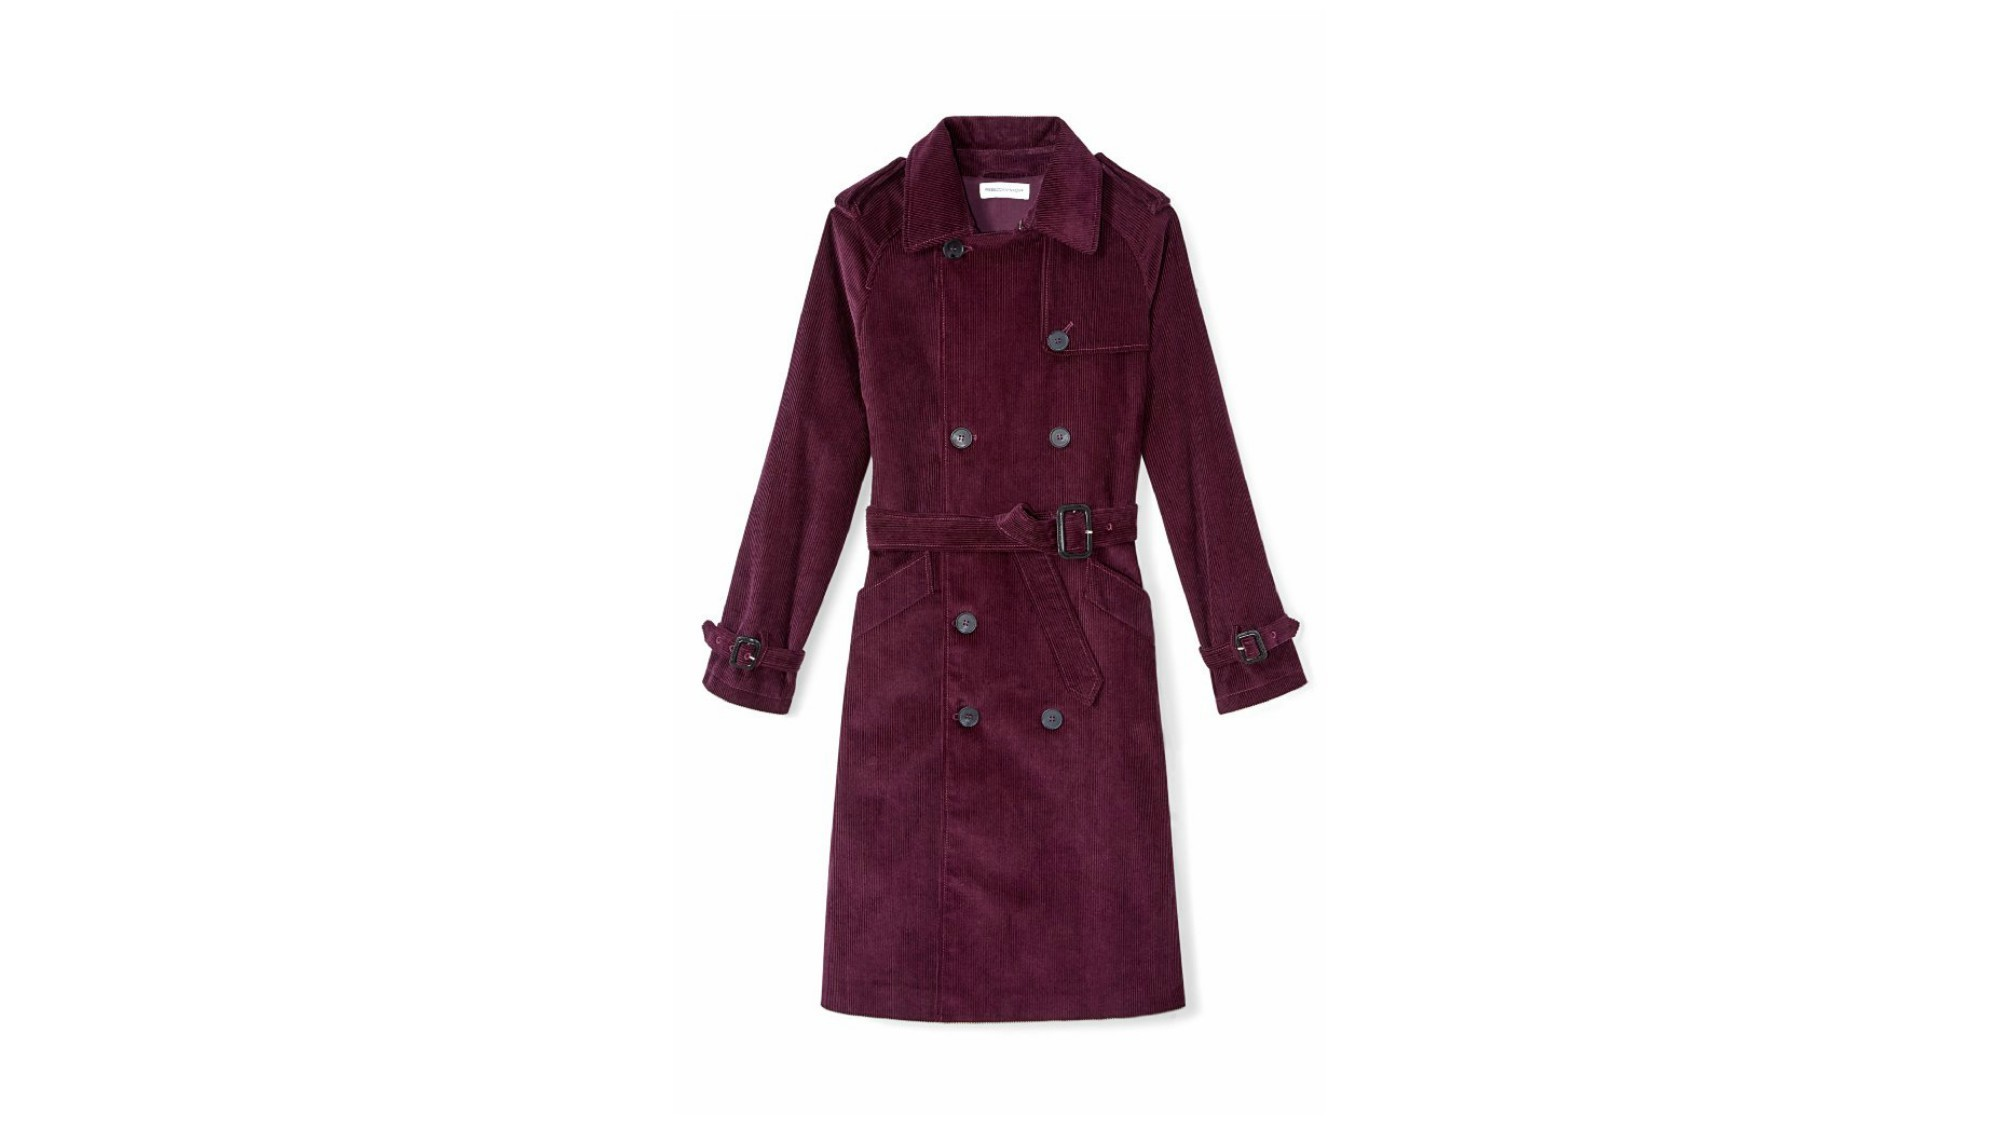 Bundle up in this dark purple Ferry belted trench from Rebecca Minkoff.